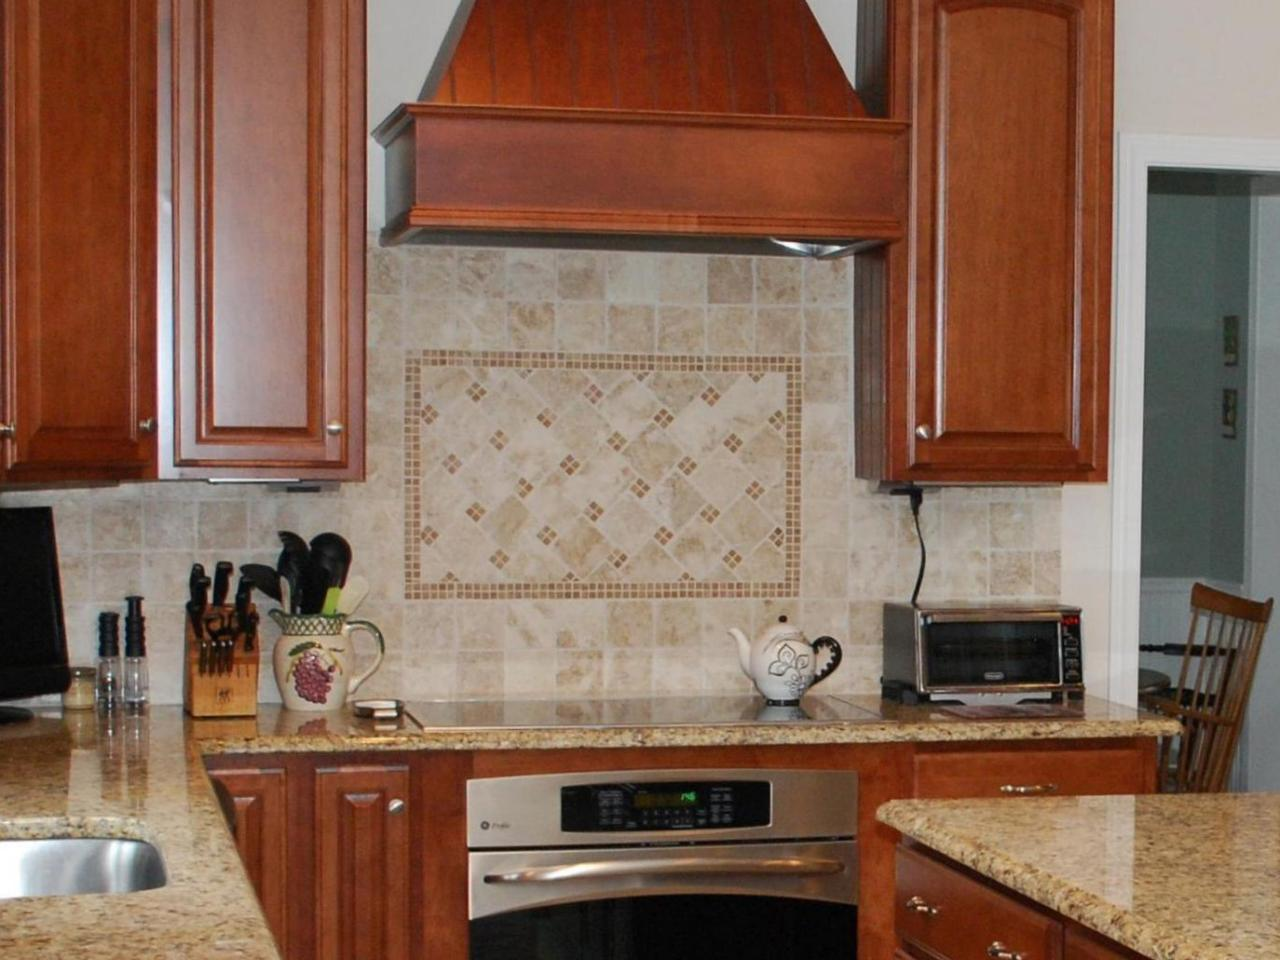 Kitchen Backsplash Designs Stunning Kitchen Backsplash Design Ideas  Hgtv Design Decoration